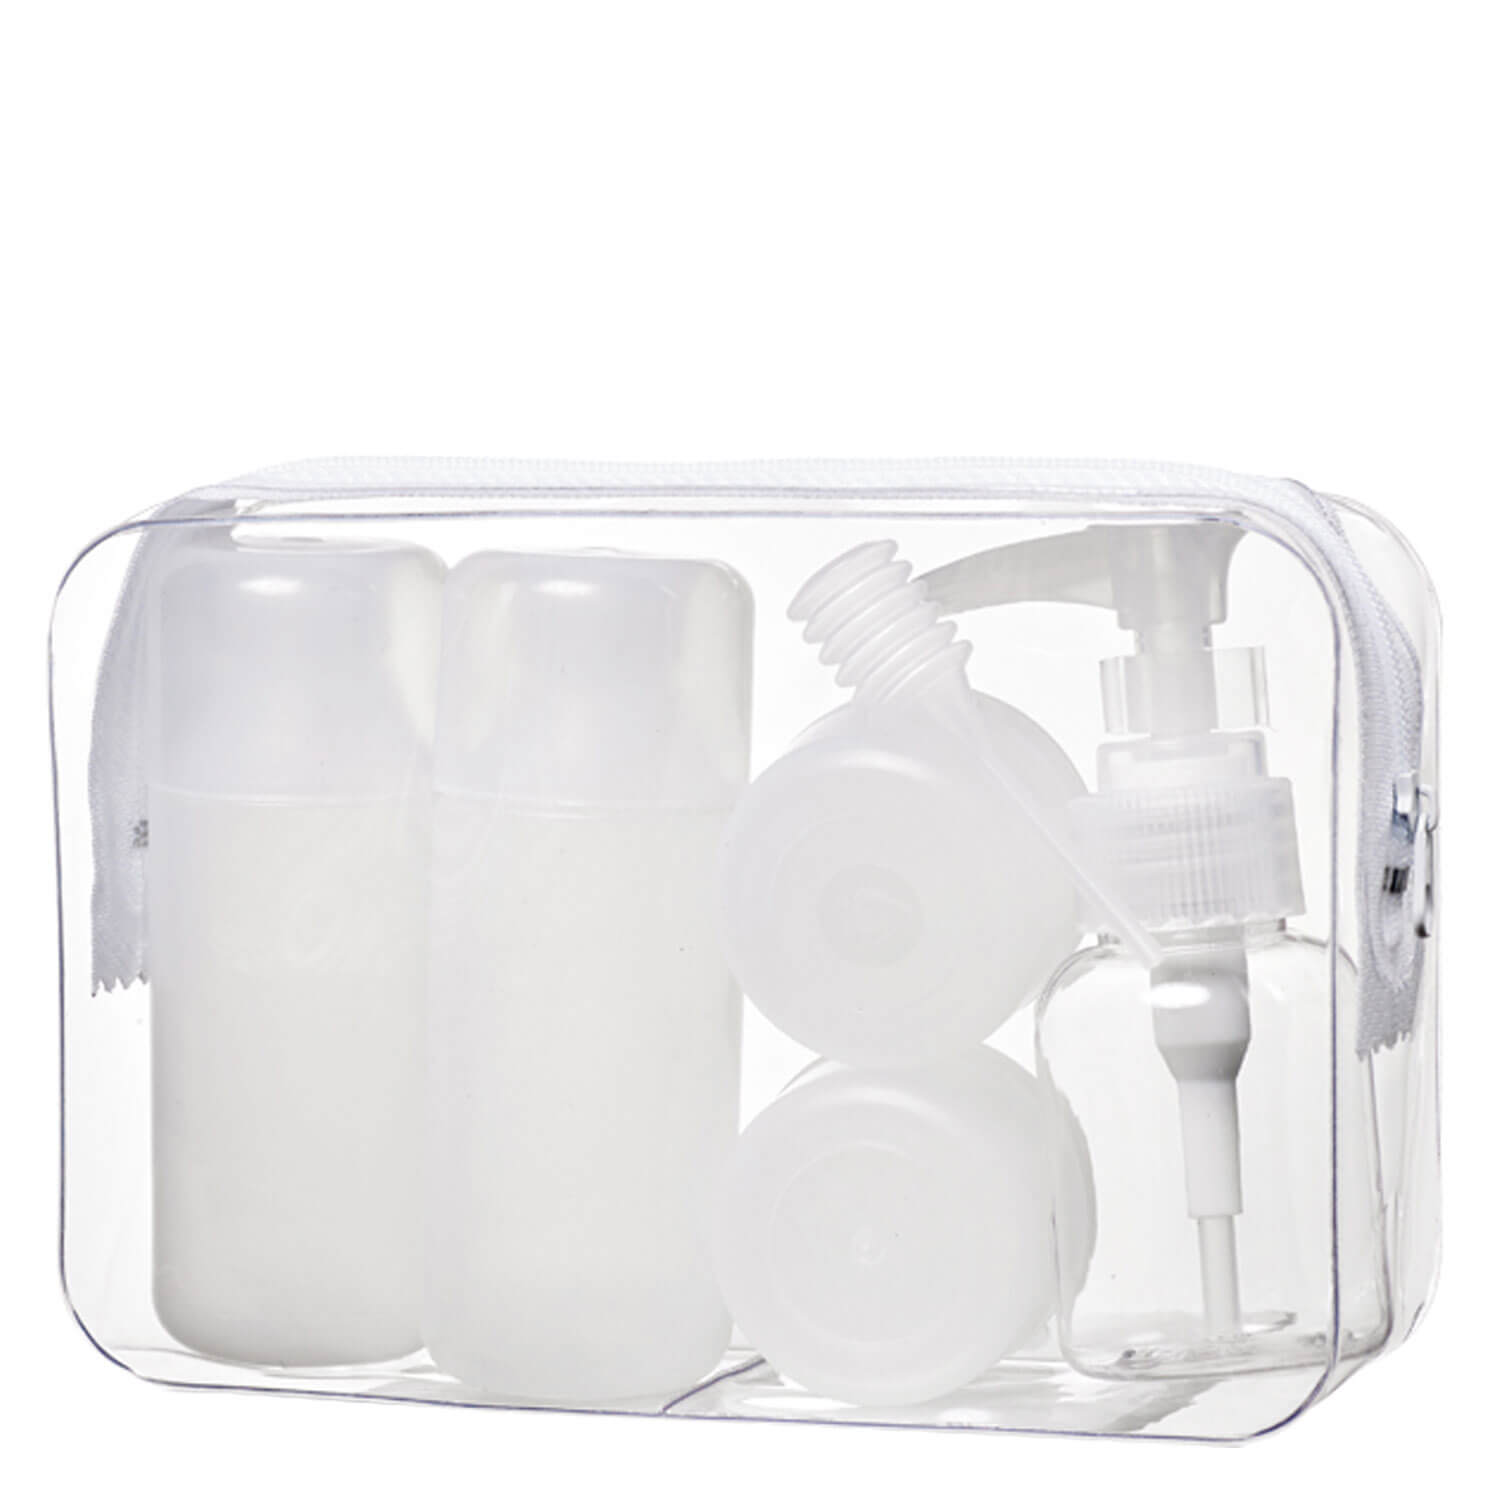 TRISA Travel - Reiseset Transparent Gross